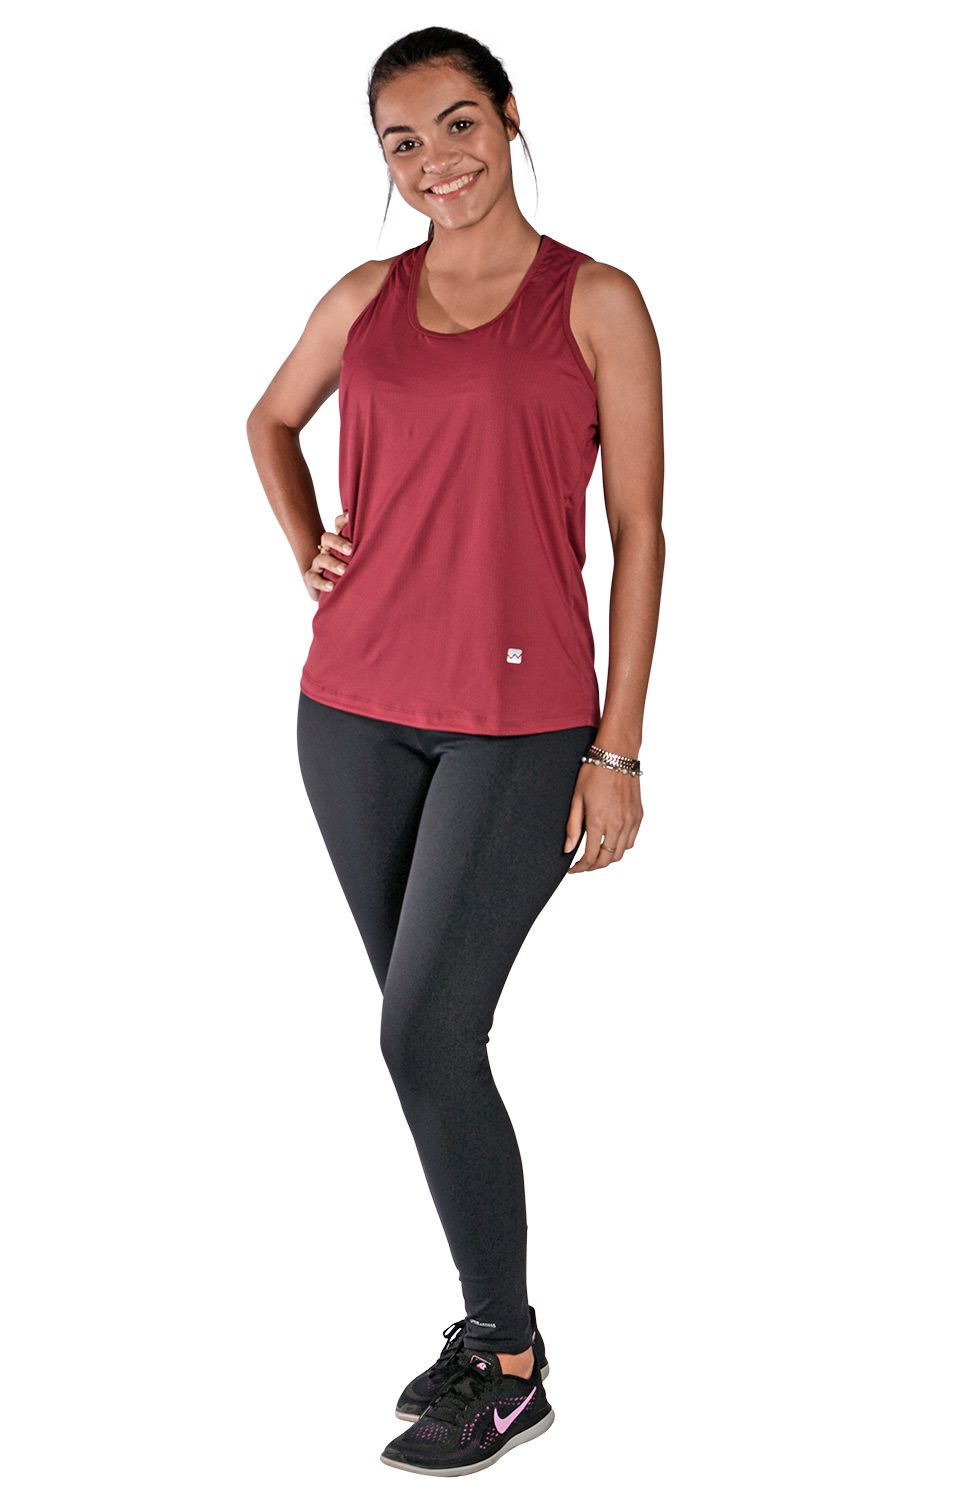 Camiseta Feminina Regata UV 50+ New Trip Marsala